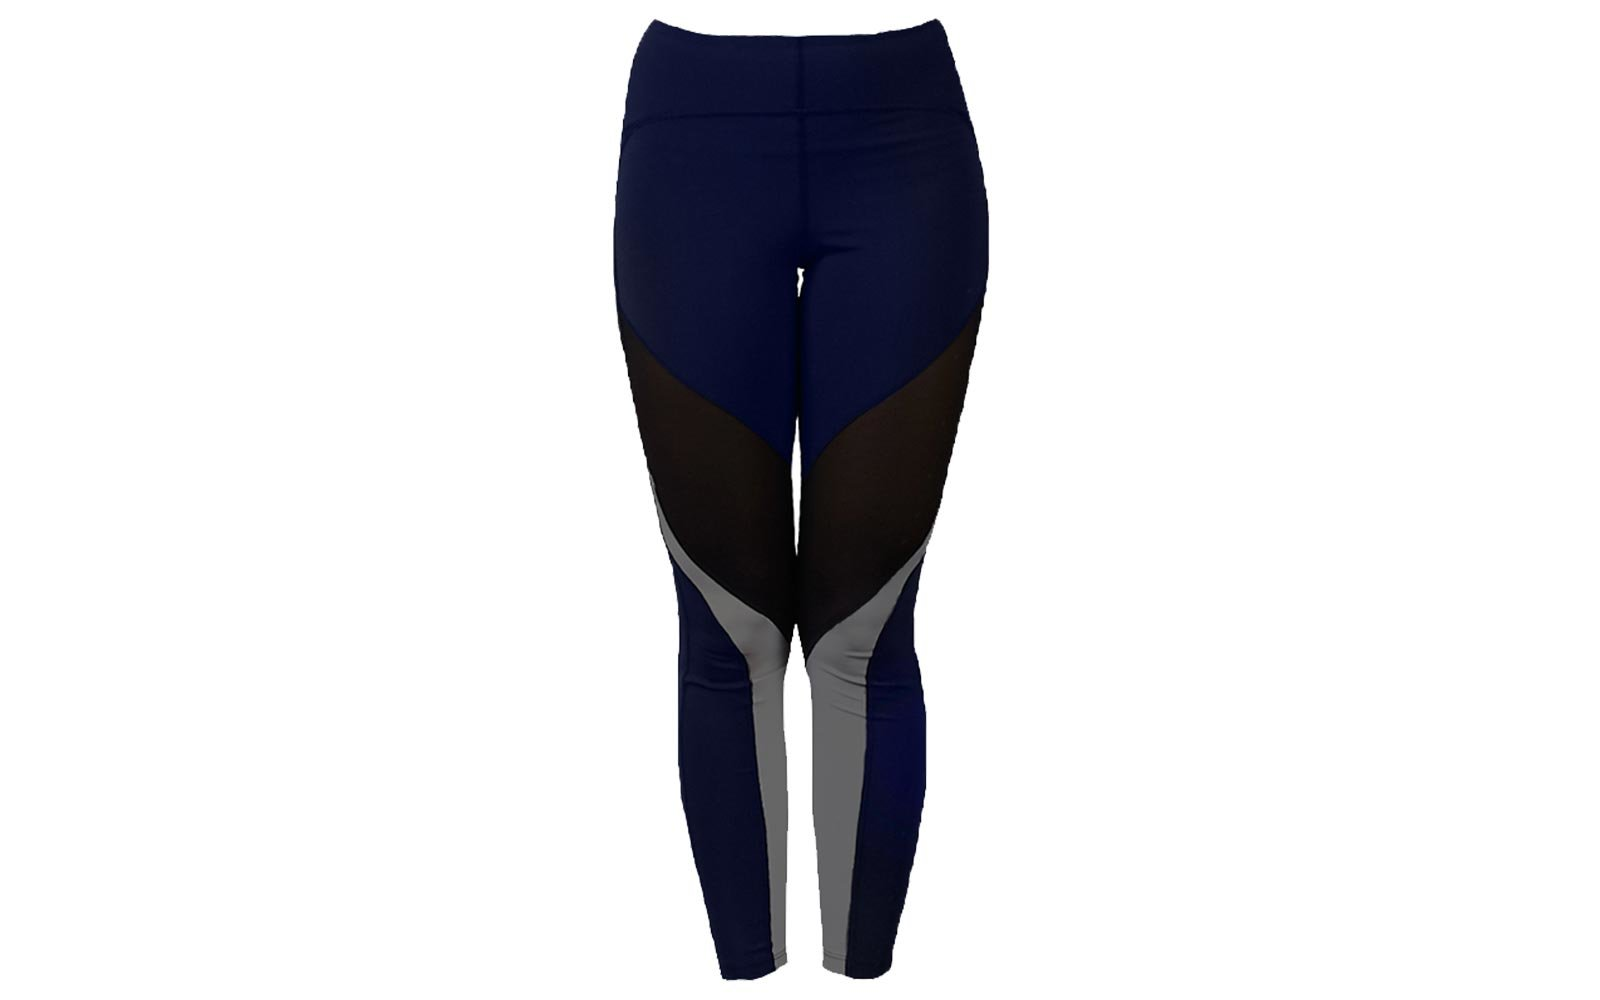 Nadi X wearable tech yoga pants